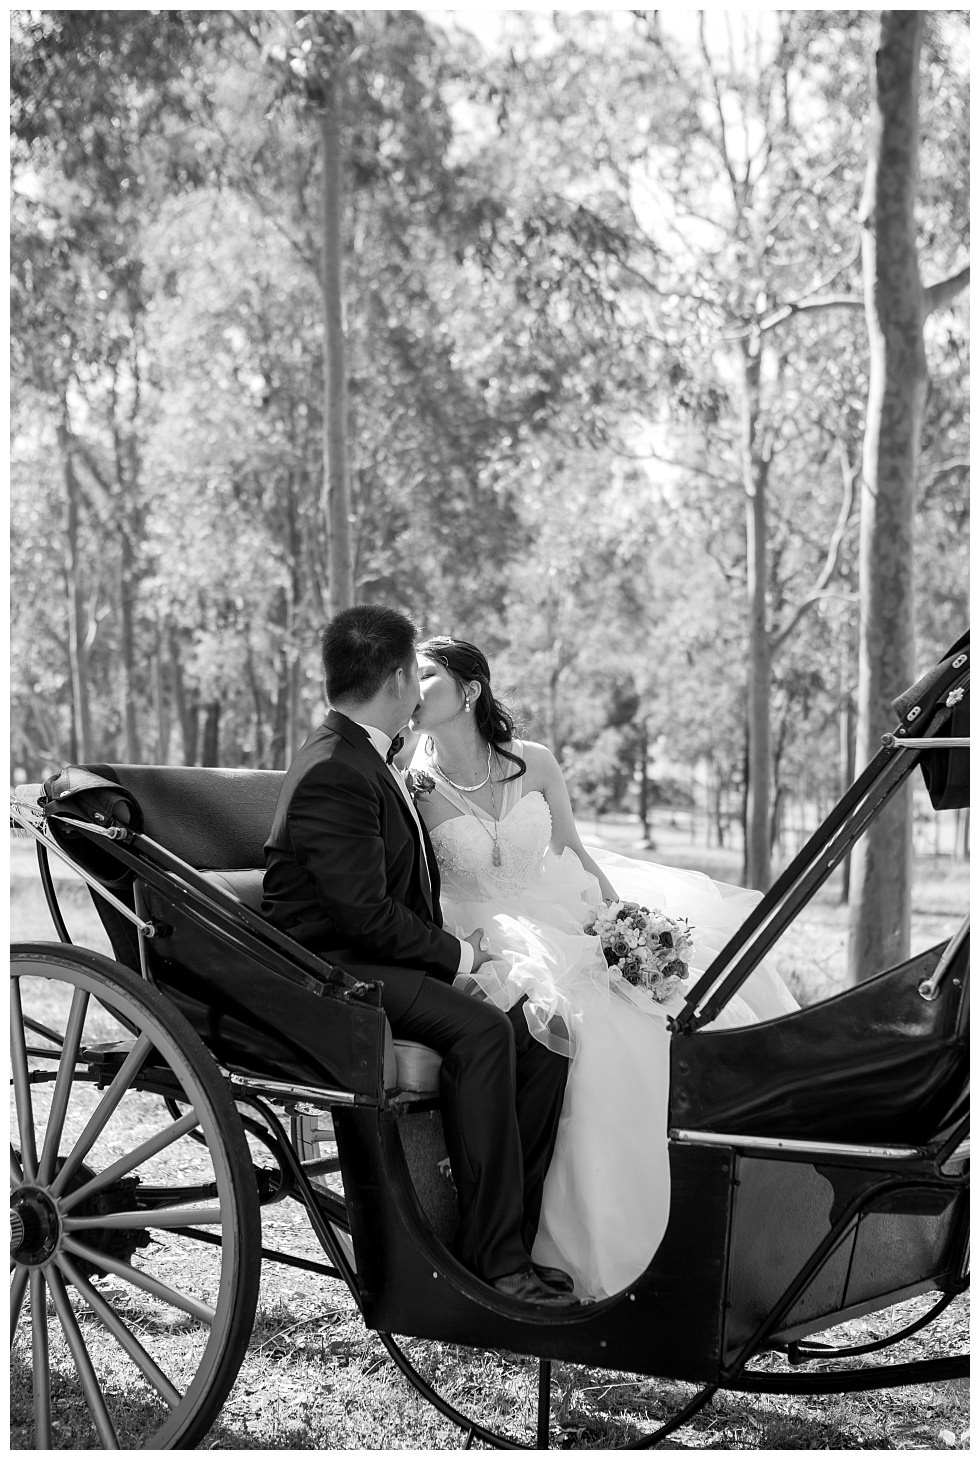 ArtyJ Photography | © Popcorn Photography – Used with Permission, Chateau Elan, The Vintage, The Carriage House, Spring Wedding, Wedding, Pokolbin, Australia, NSW, Photography | Yin & Hui | Wedding